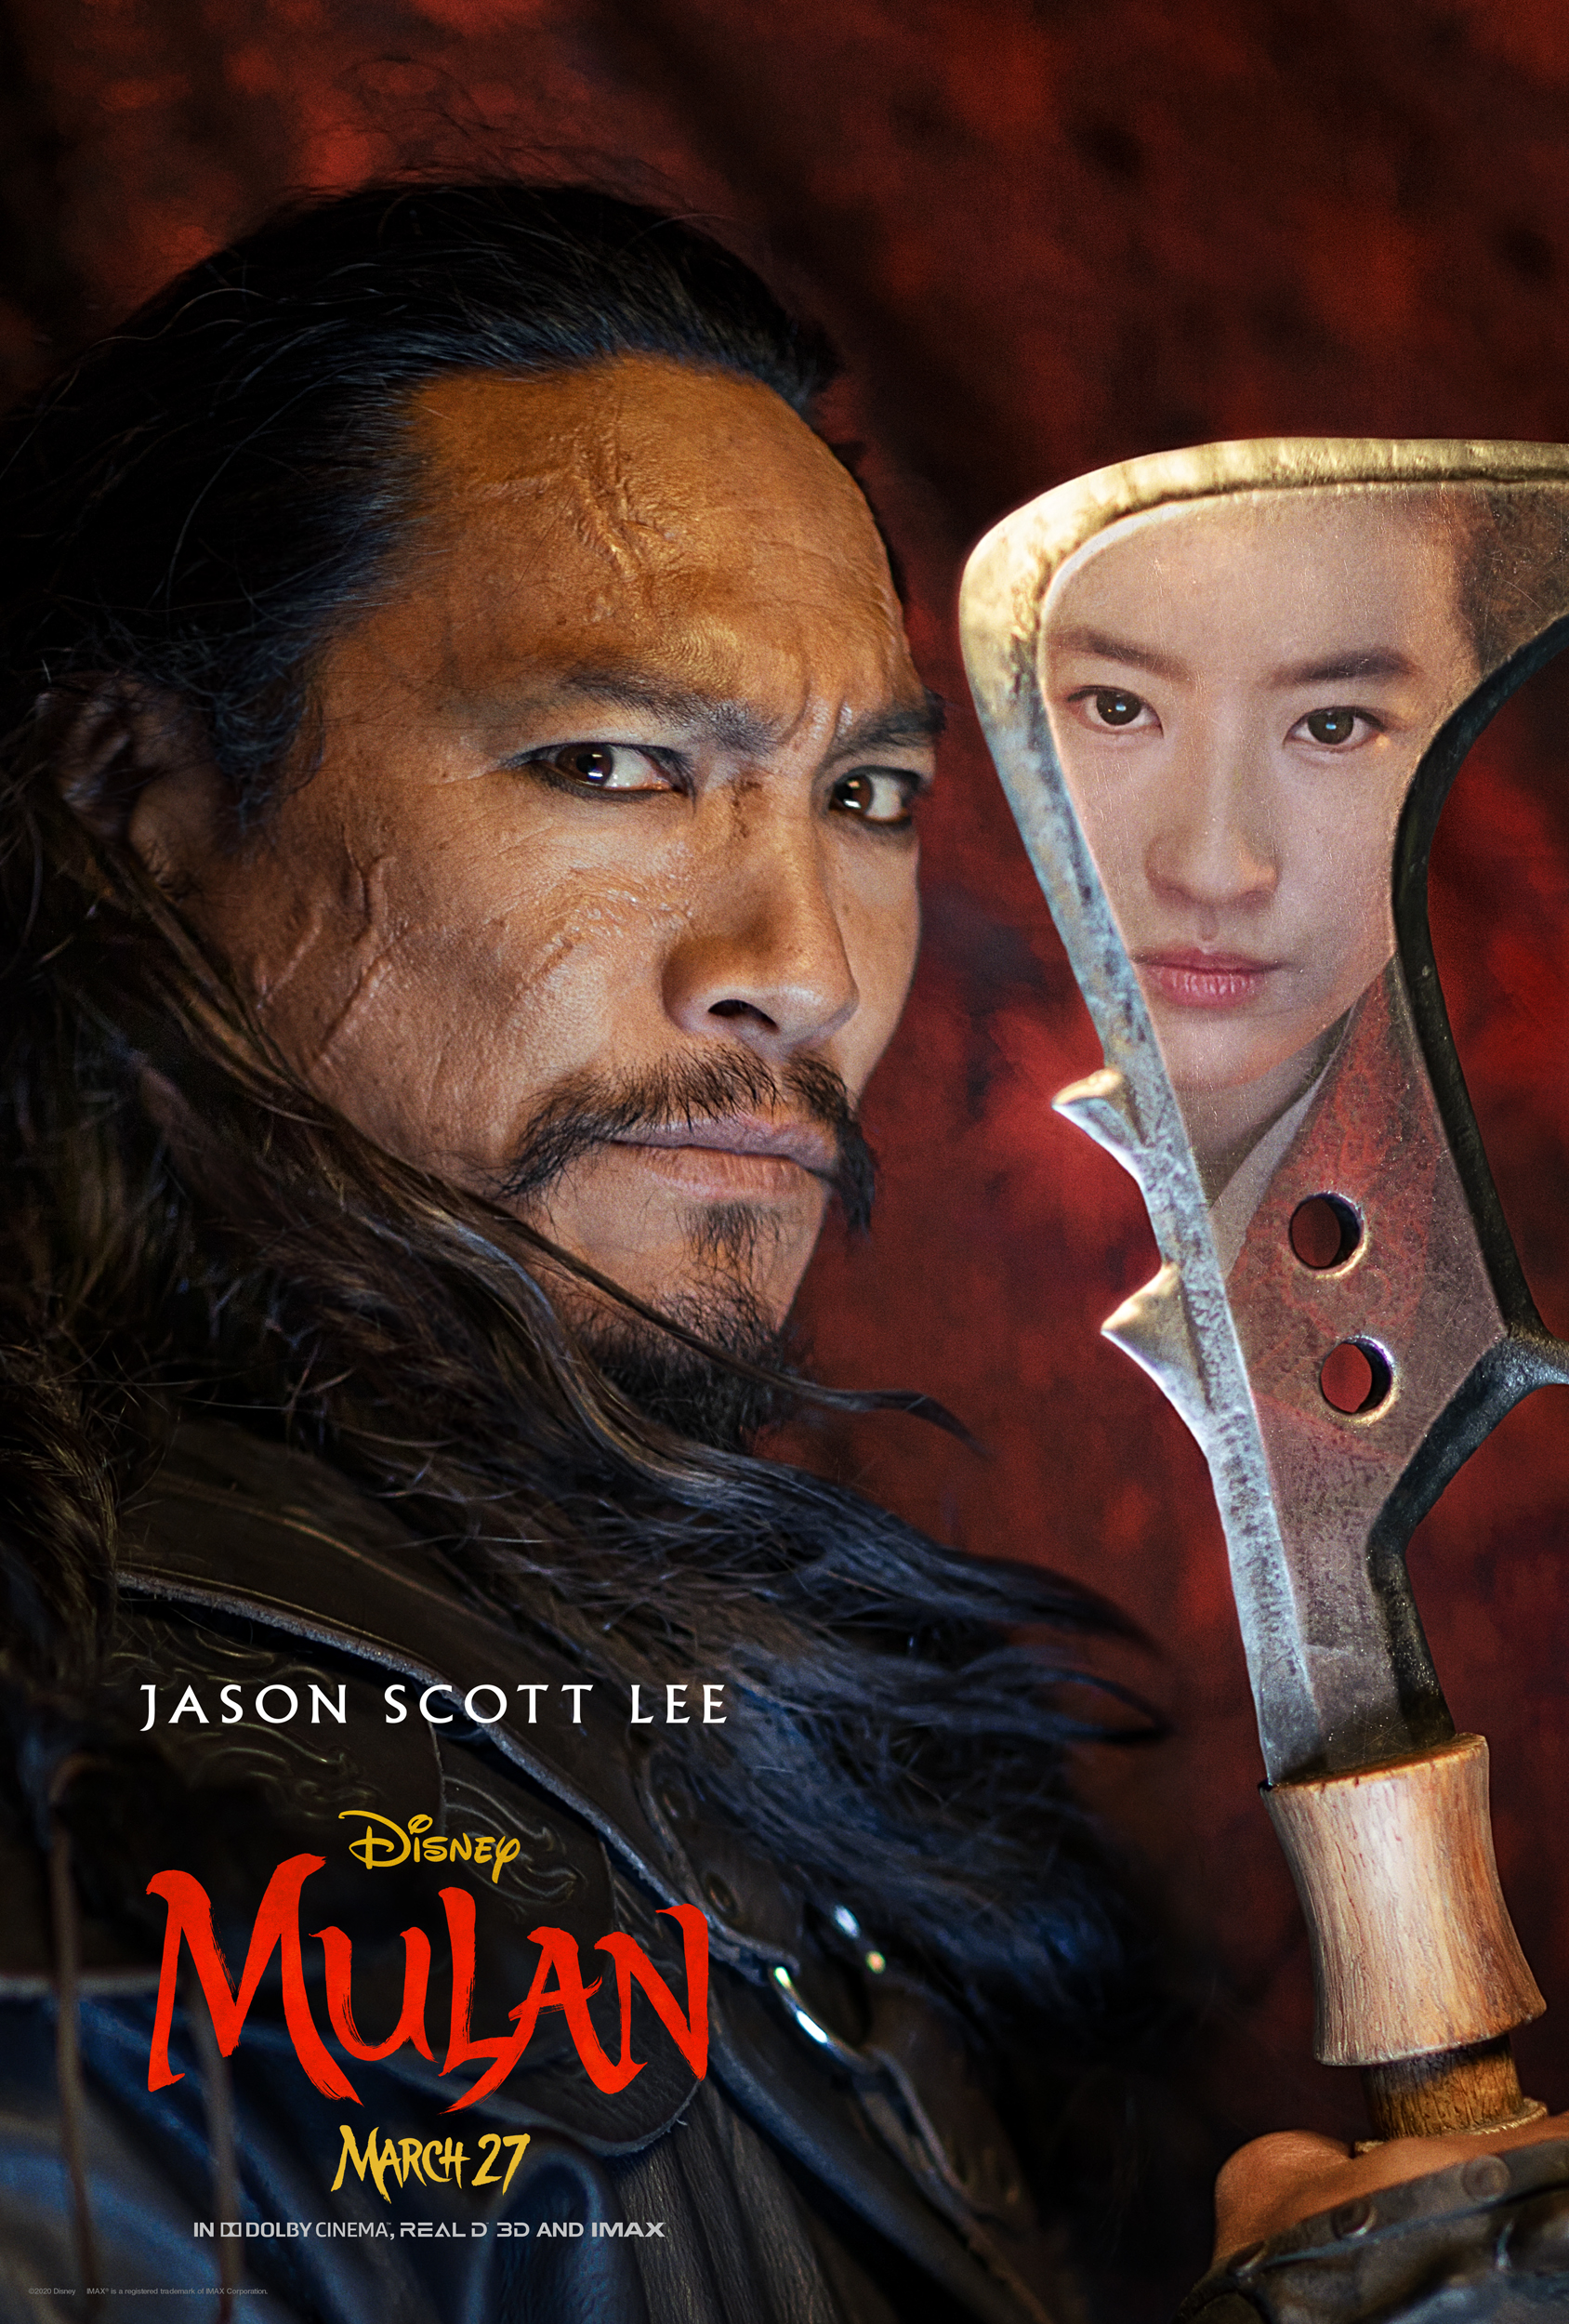 Mulan Character Poster Jason Scott Lee